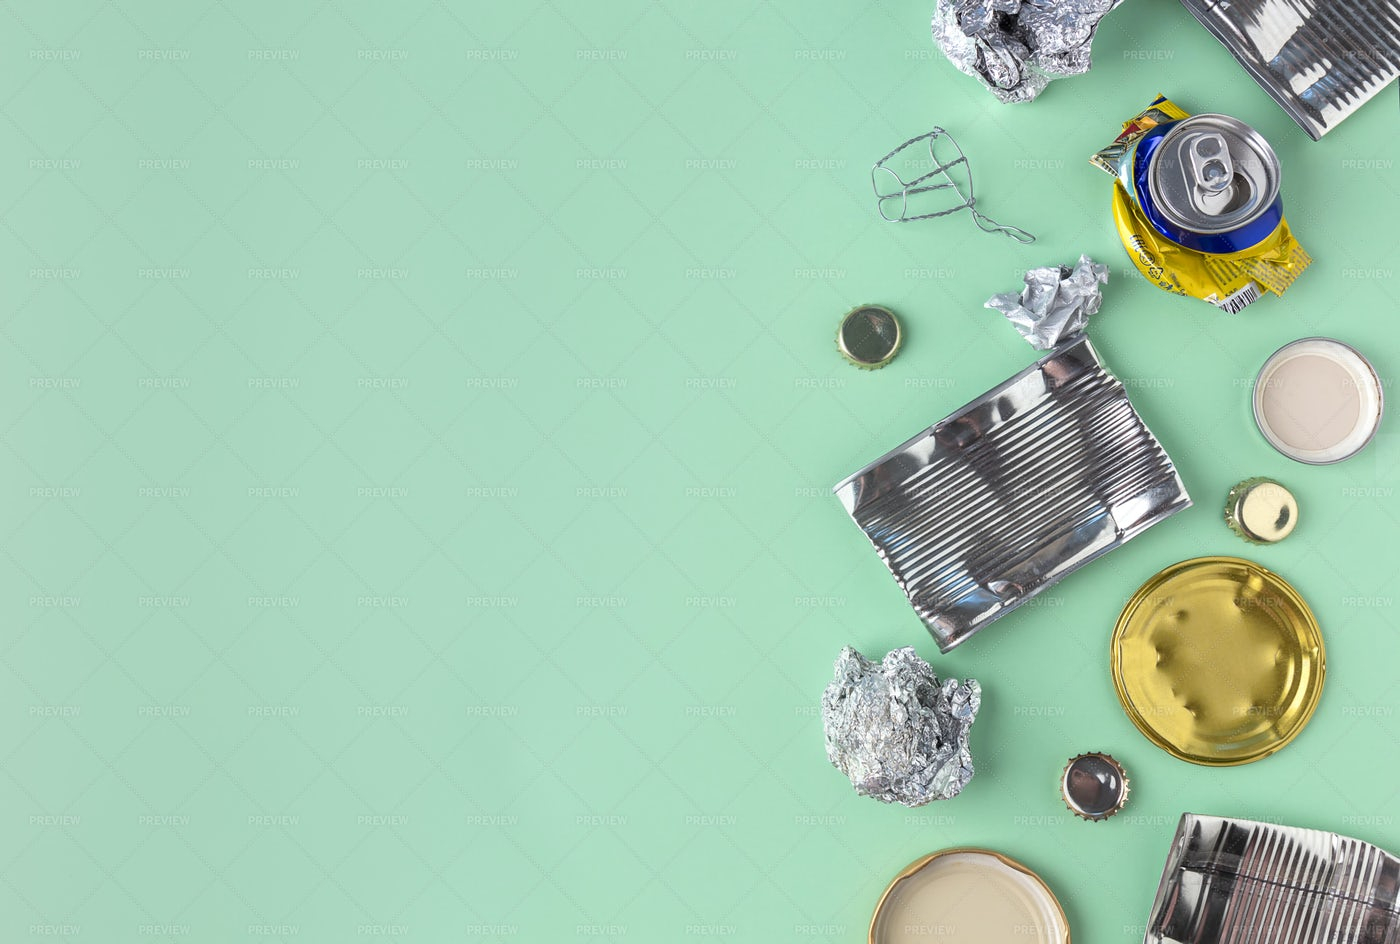 Tin And Aluminum Waste: Stock Photos